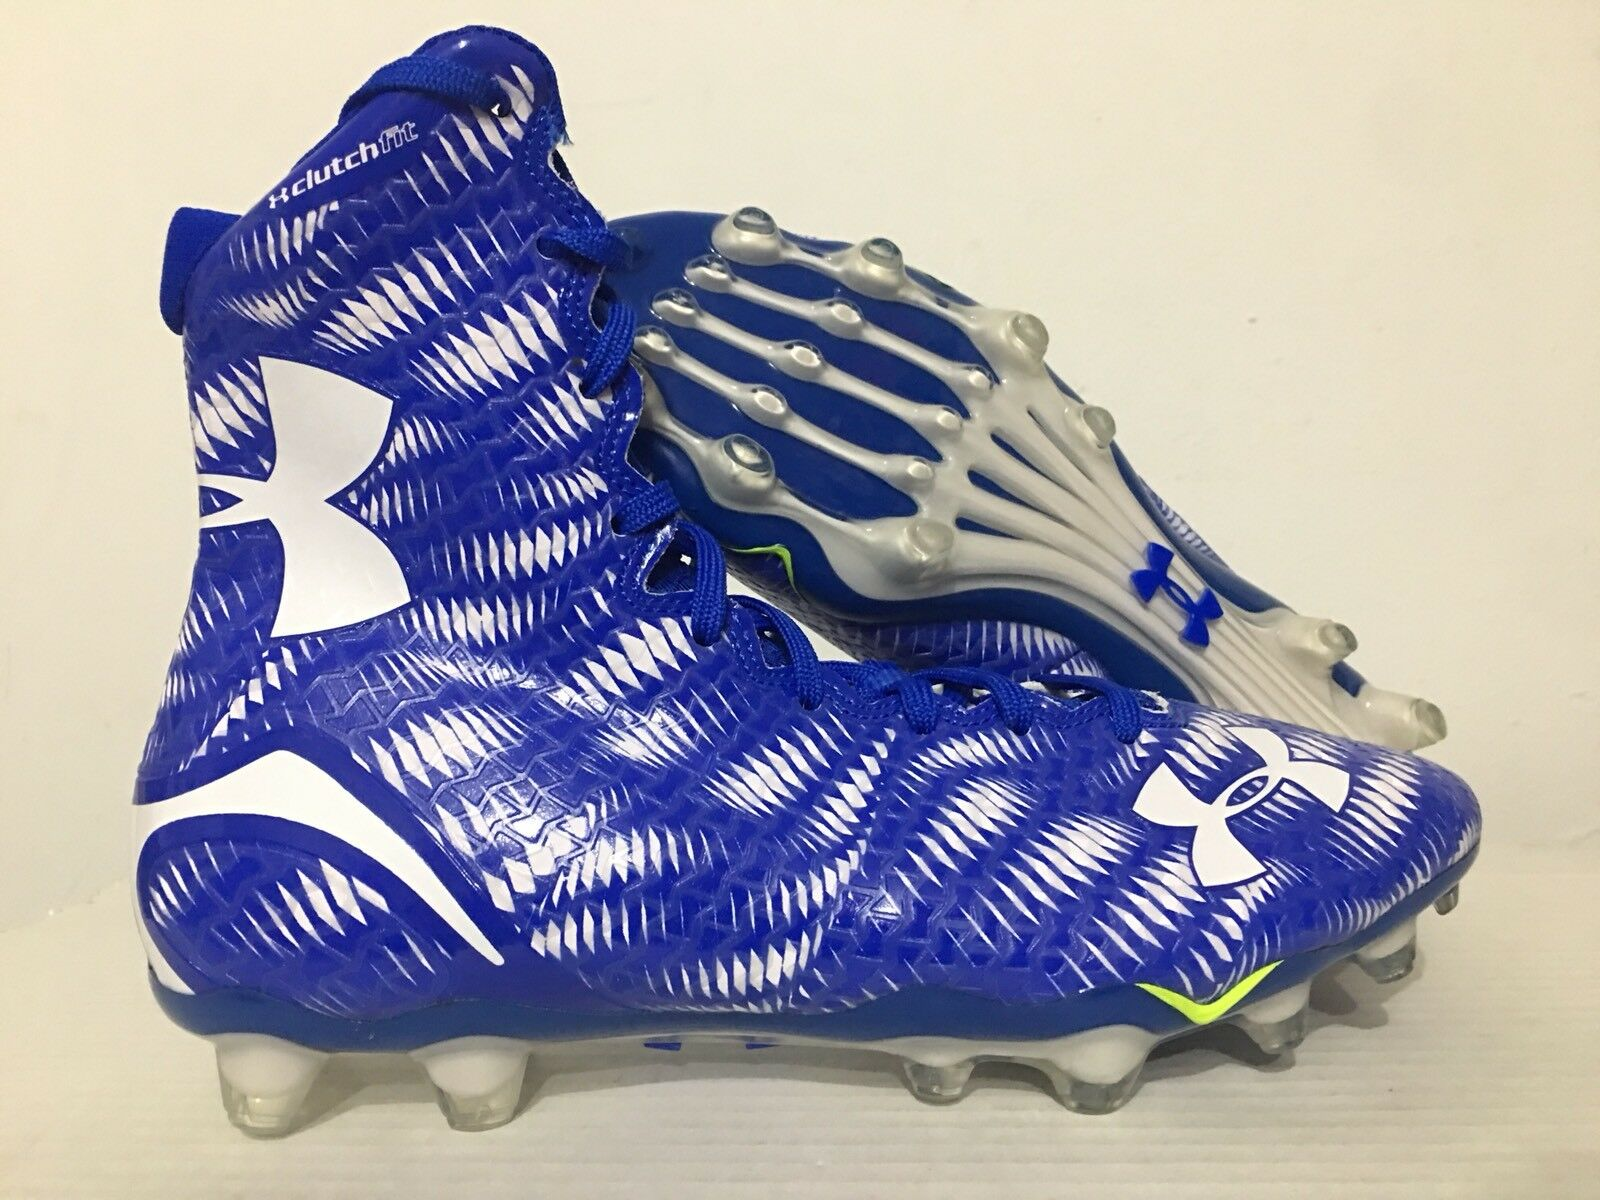 Under Armour Highlight MC Football Cleats Royal Blue White SZ 10 [1258400-412]